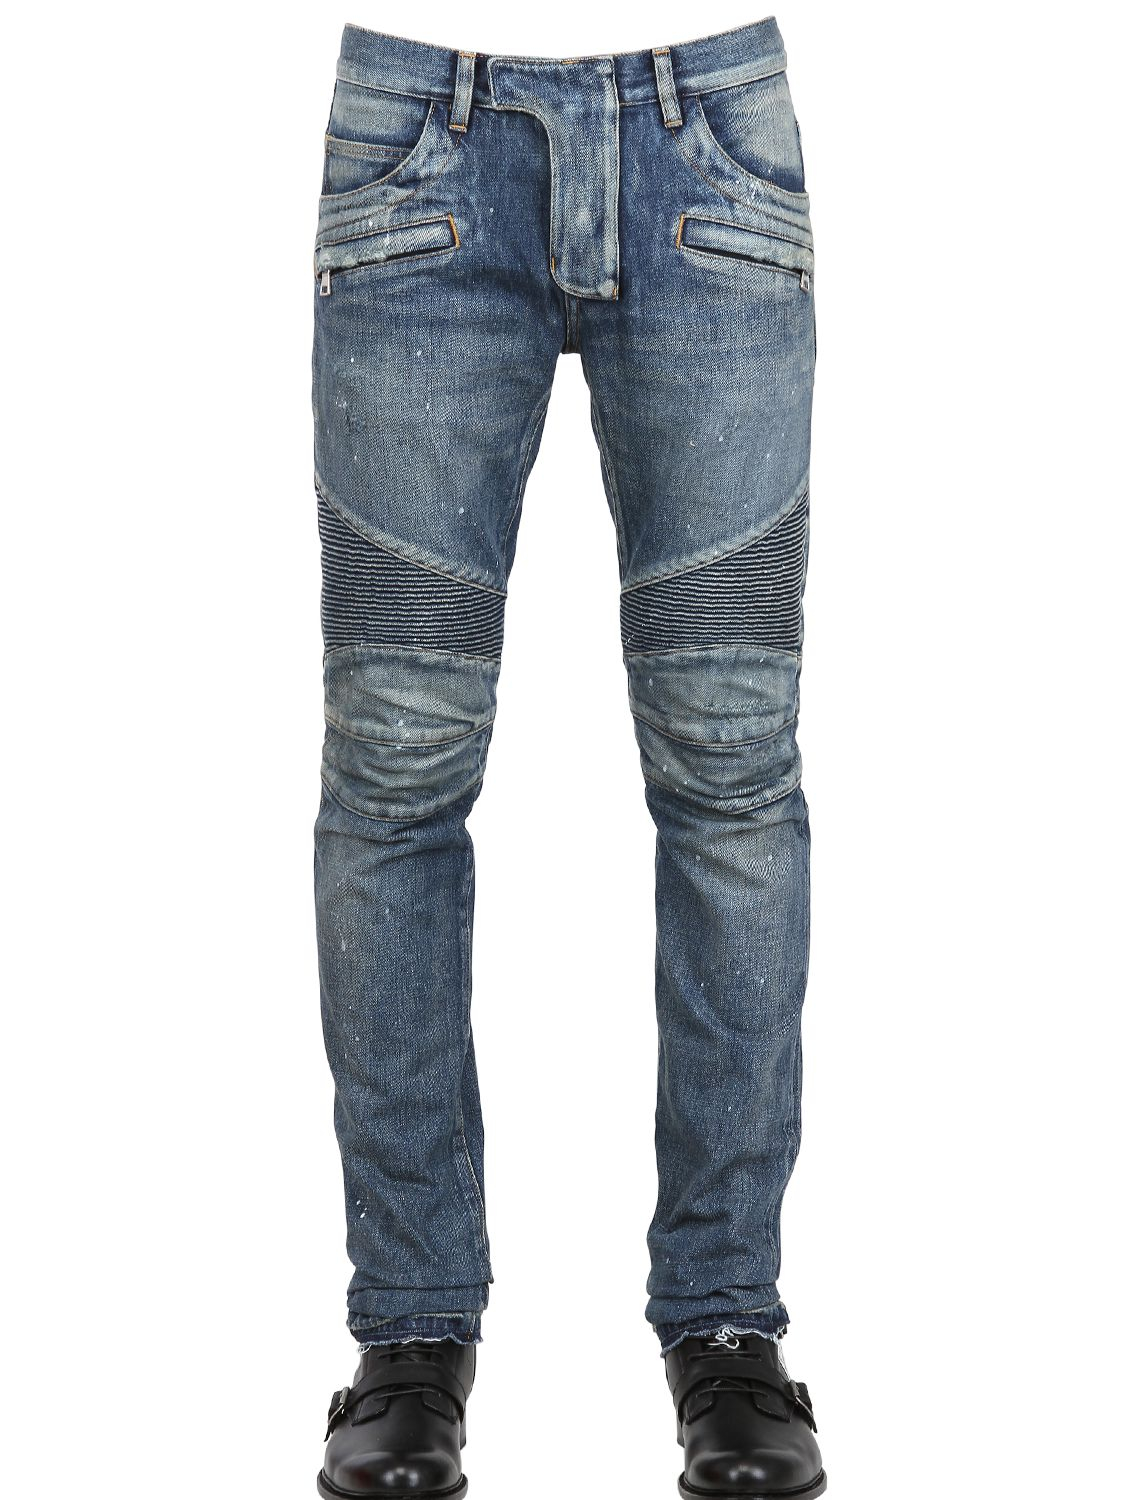 Shop fashion biker denim jeans sale online at Twinkledeals. Search the latest biker denim jeans with affordable price and free shipping available worldwide.